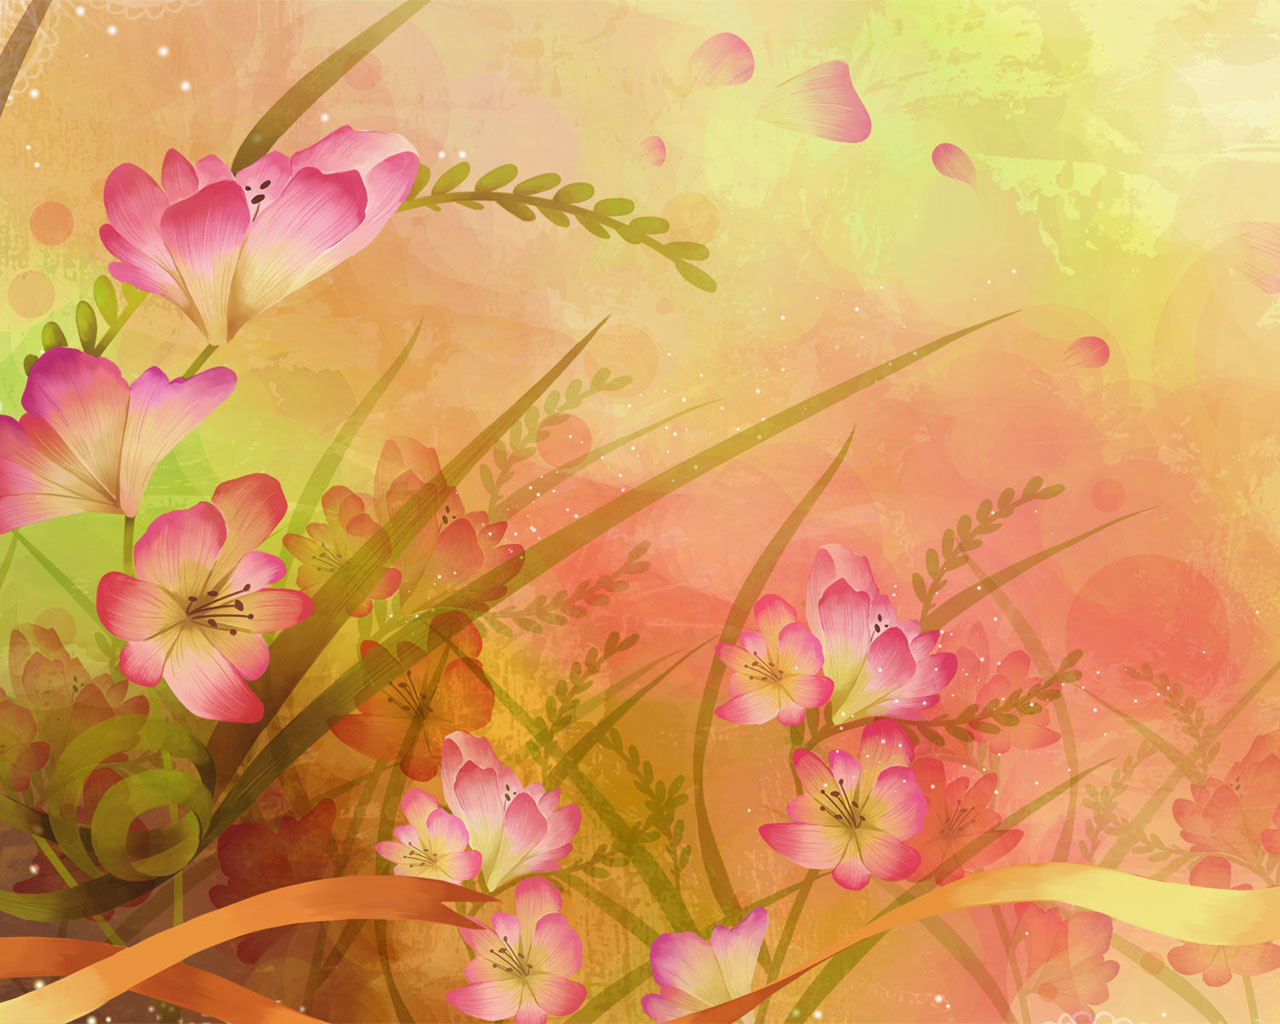 Illustration of Abstract Floral Background 1280x1024